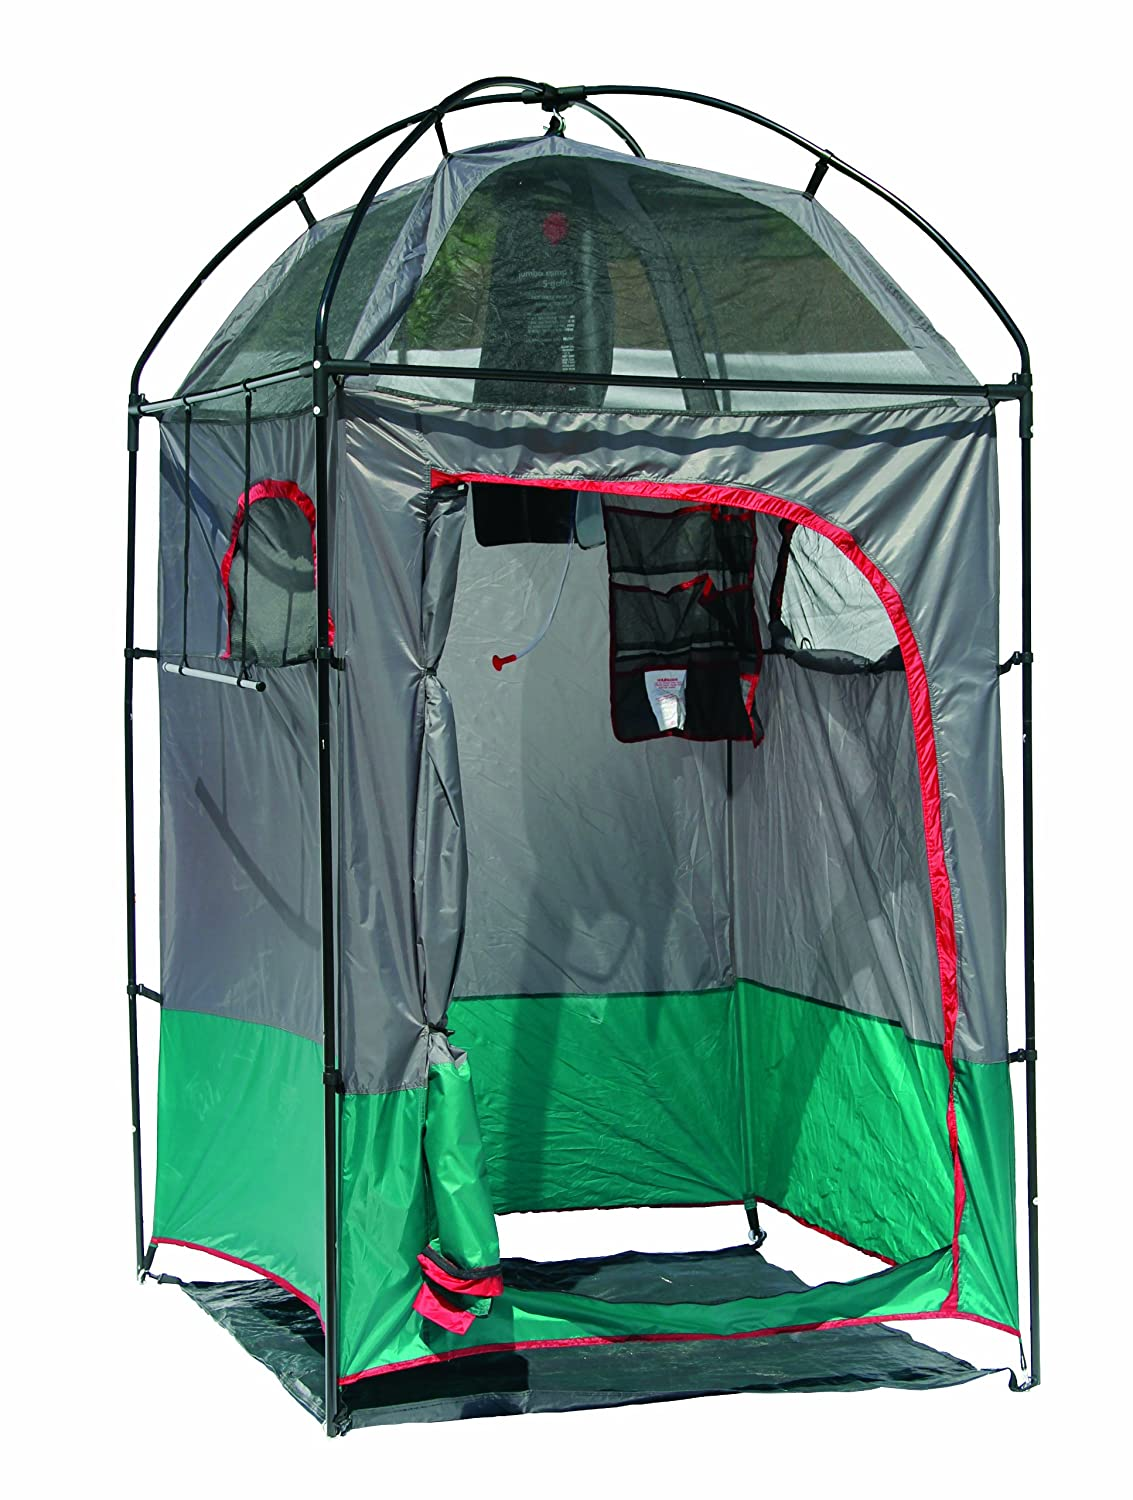 Top 10 Best C&ing Privacy Shower Tents Reviews 2016-2017 on Flipboard  sc 1 st  Flipboard : tents with toilets - memphite.com